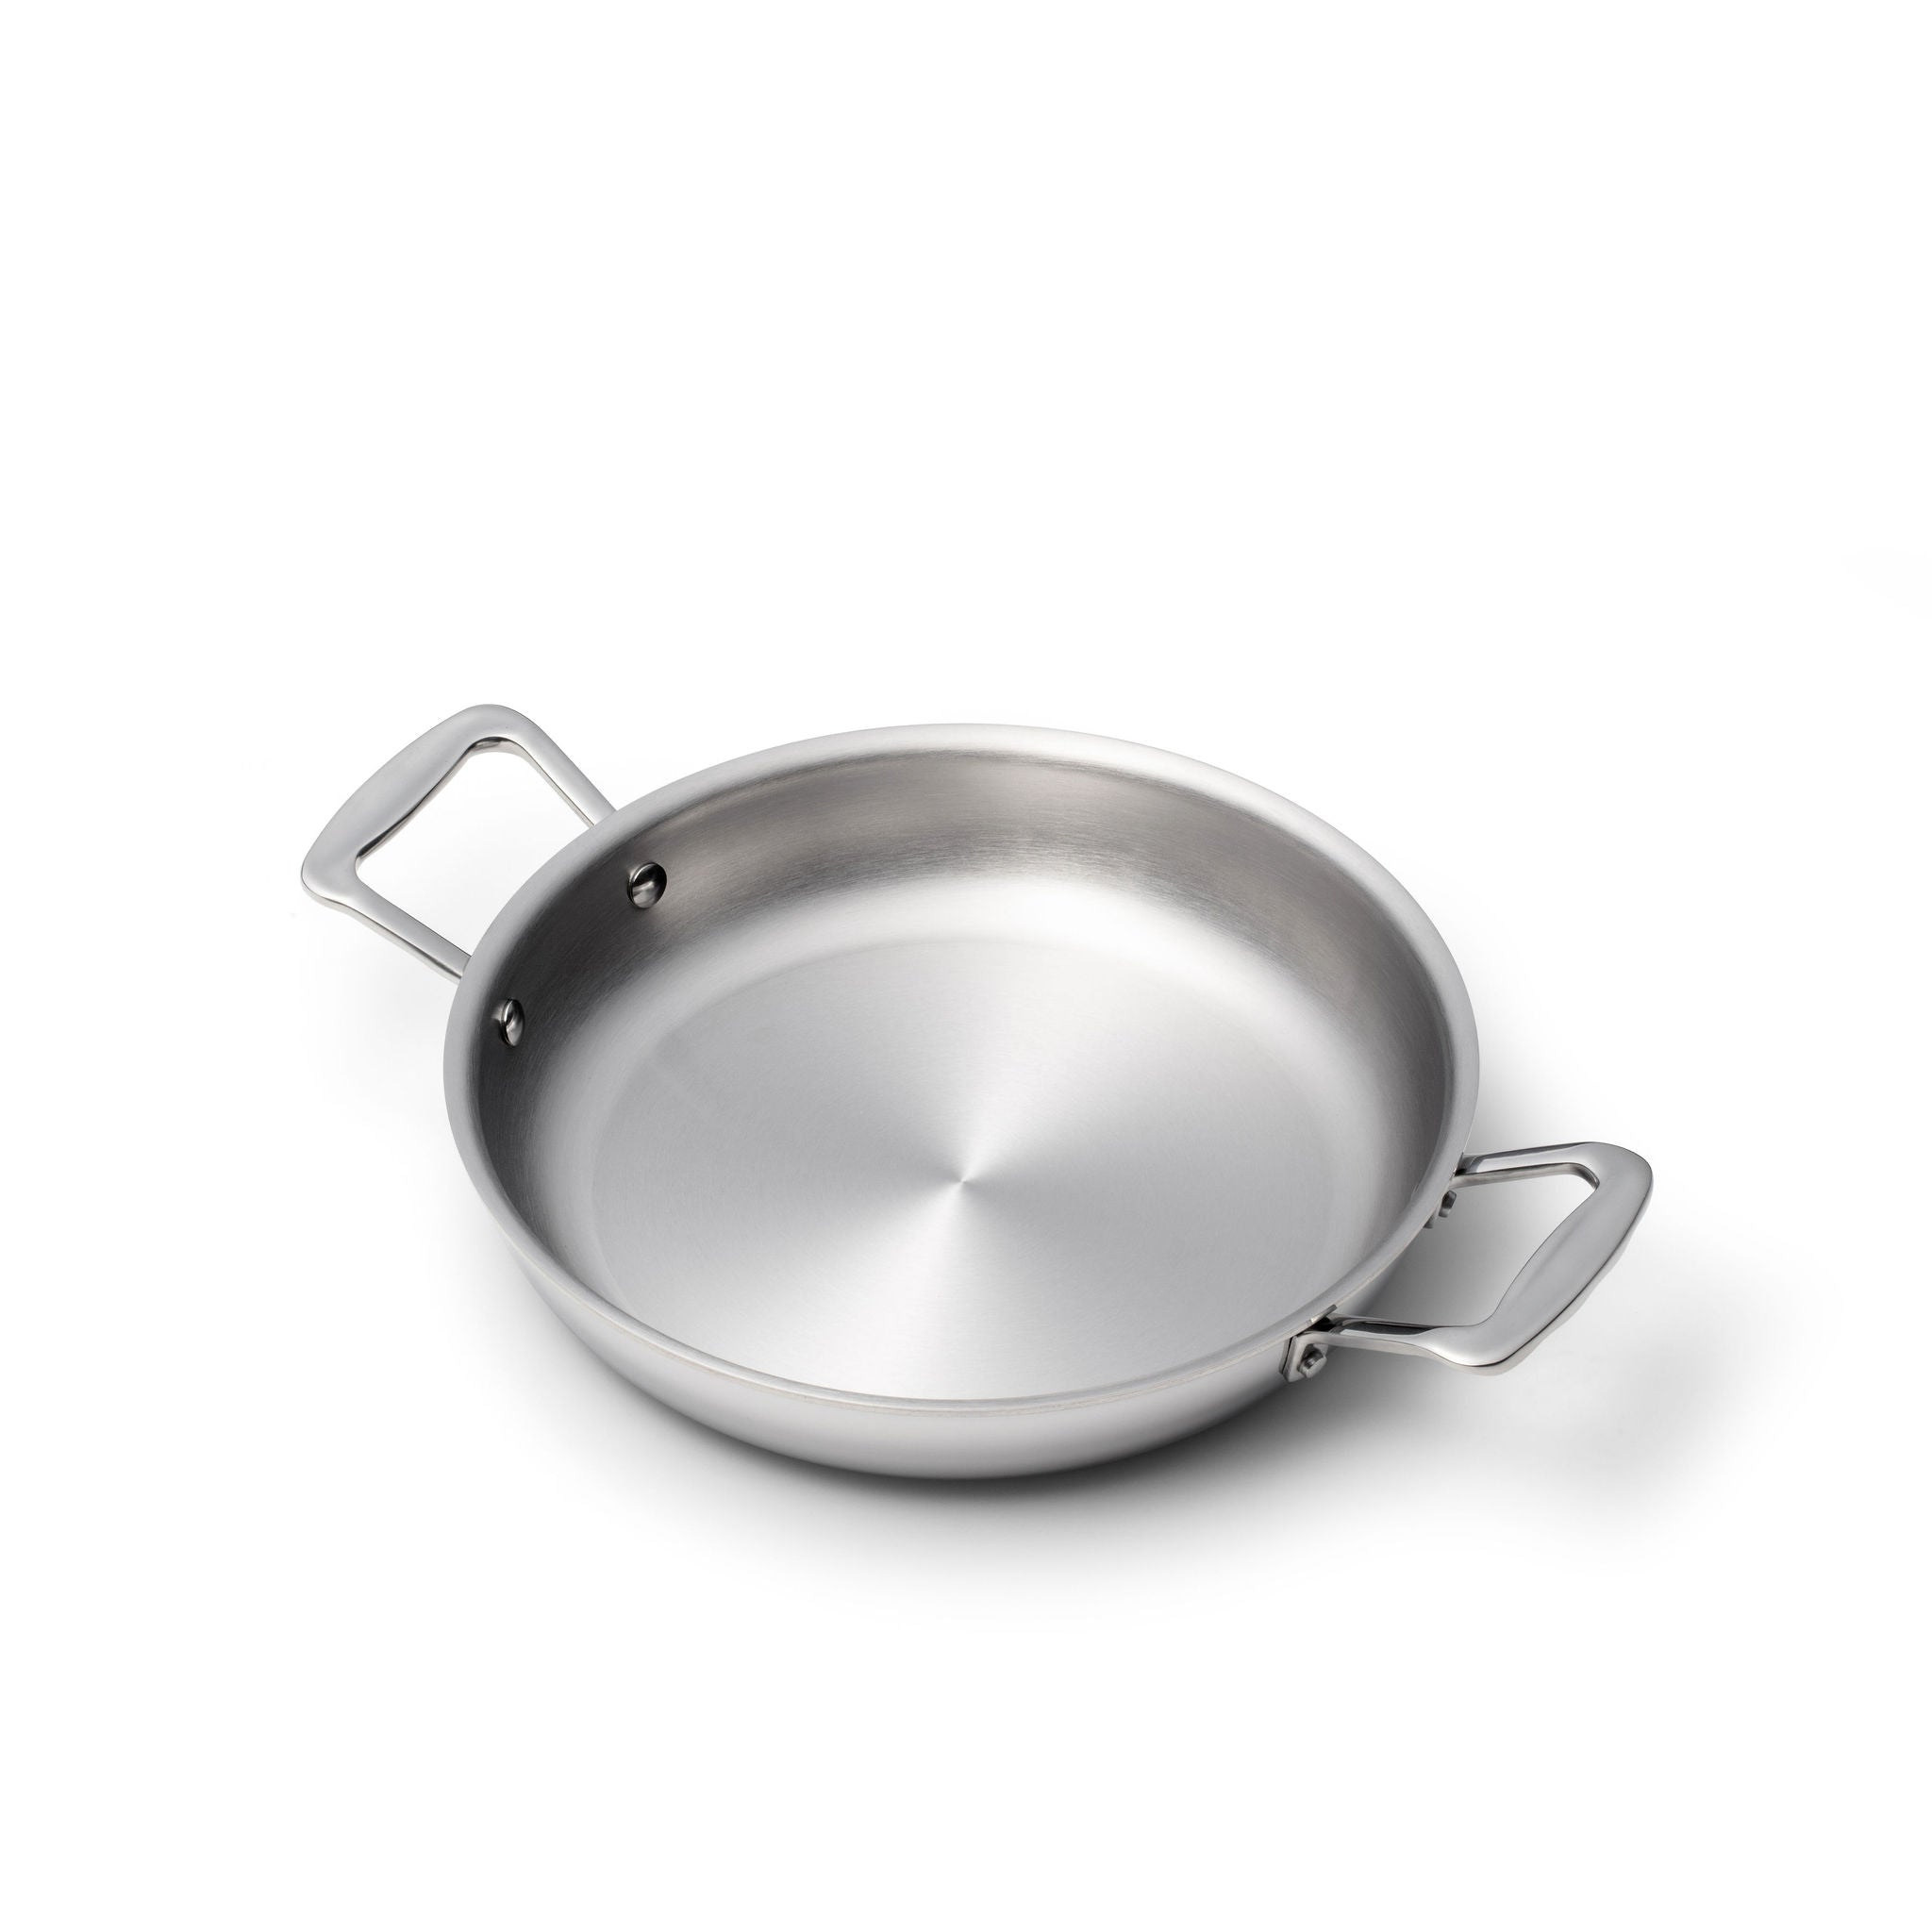 10 Inch Fry Pan with Short Handles